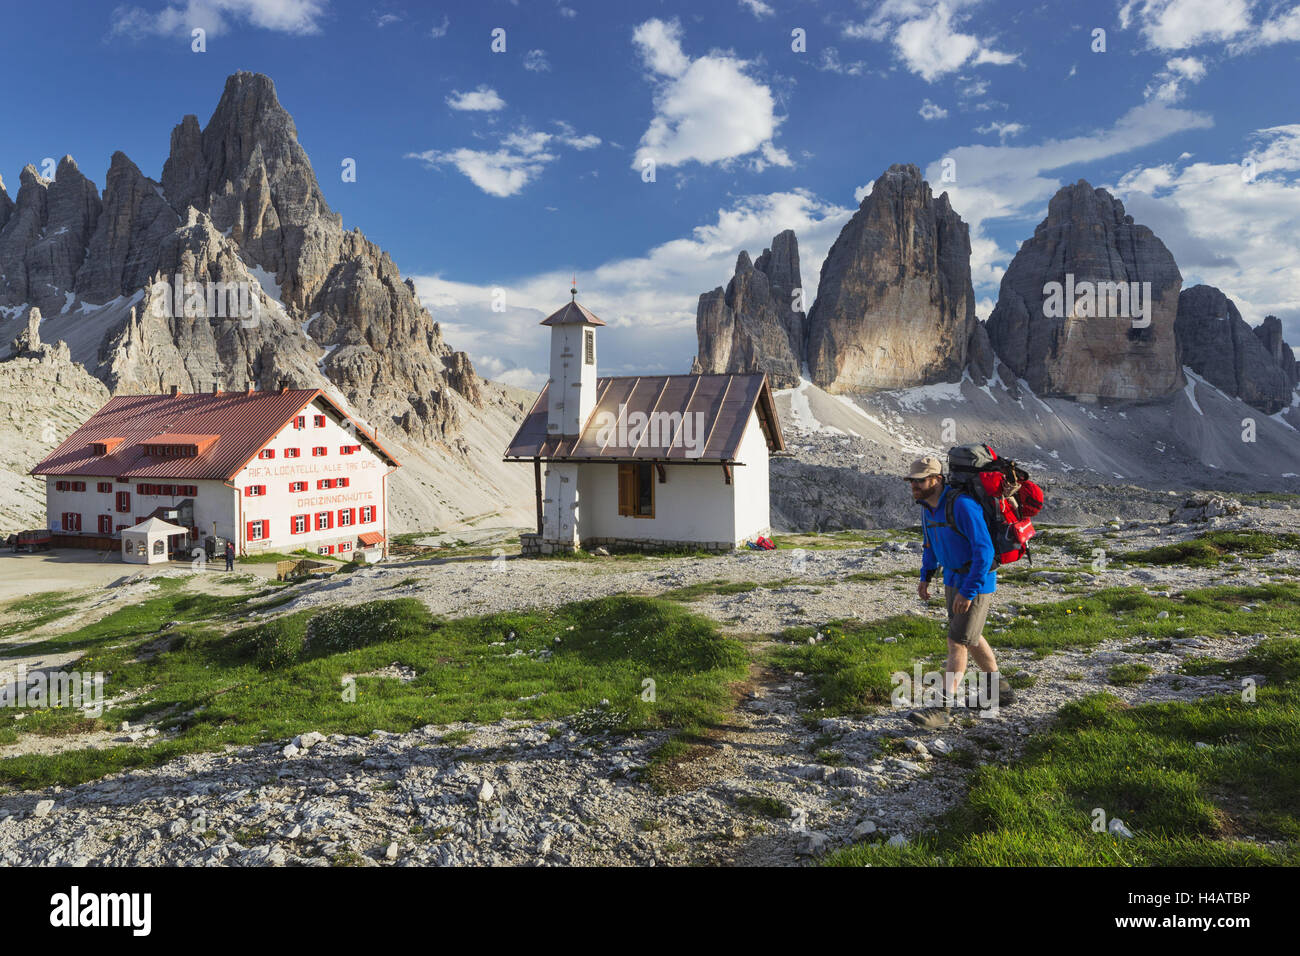 Traveller, chapel, 'Drei Zinnen Hütte' mountain hut, Paternkofel, South Tyrol, the Dolomites mountains, - Stock Image